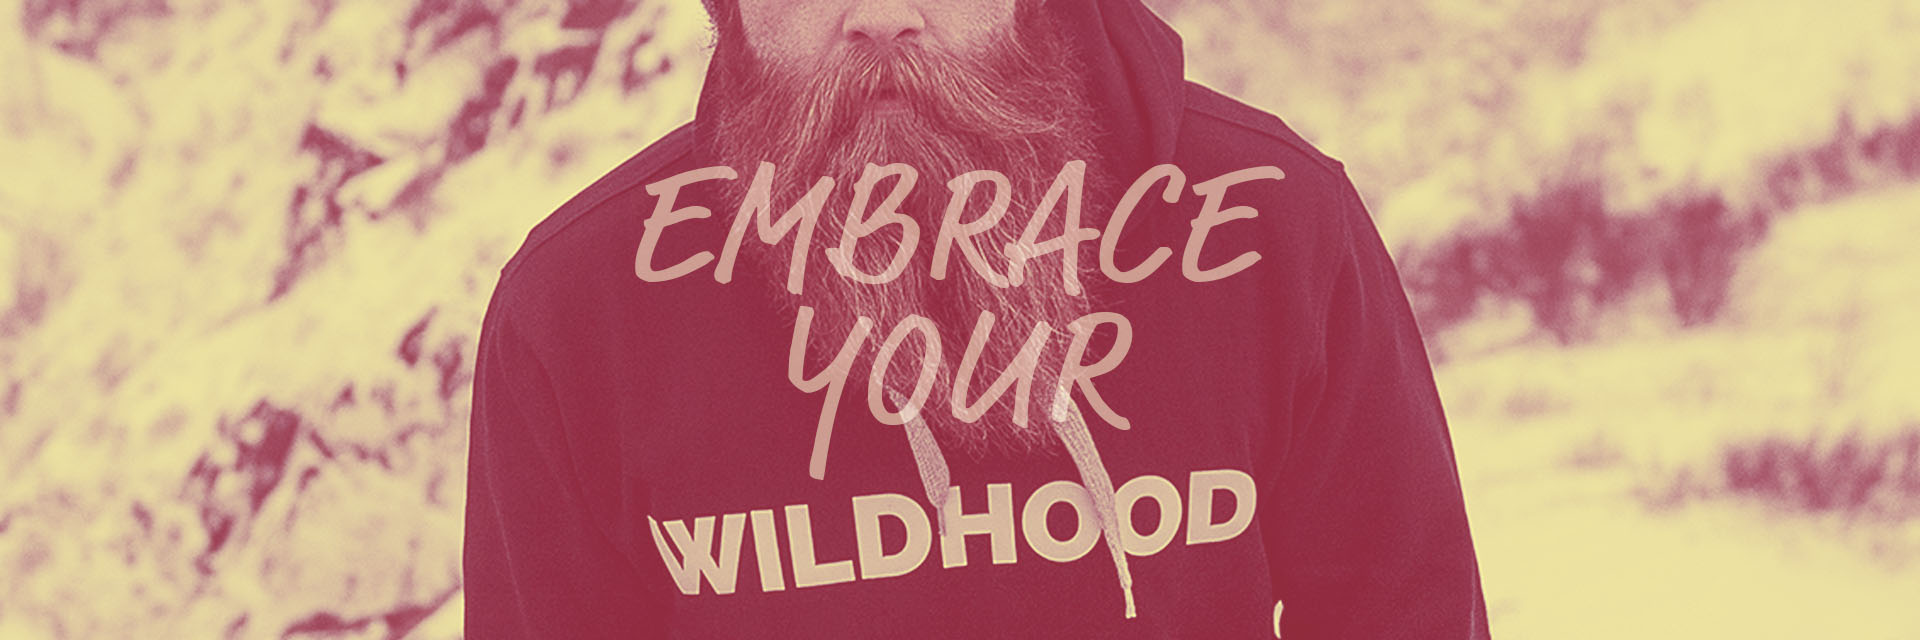 Embrace your Wildhood